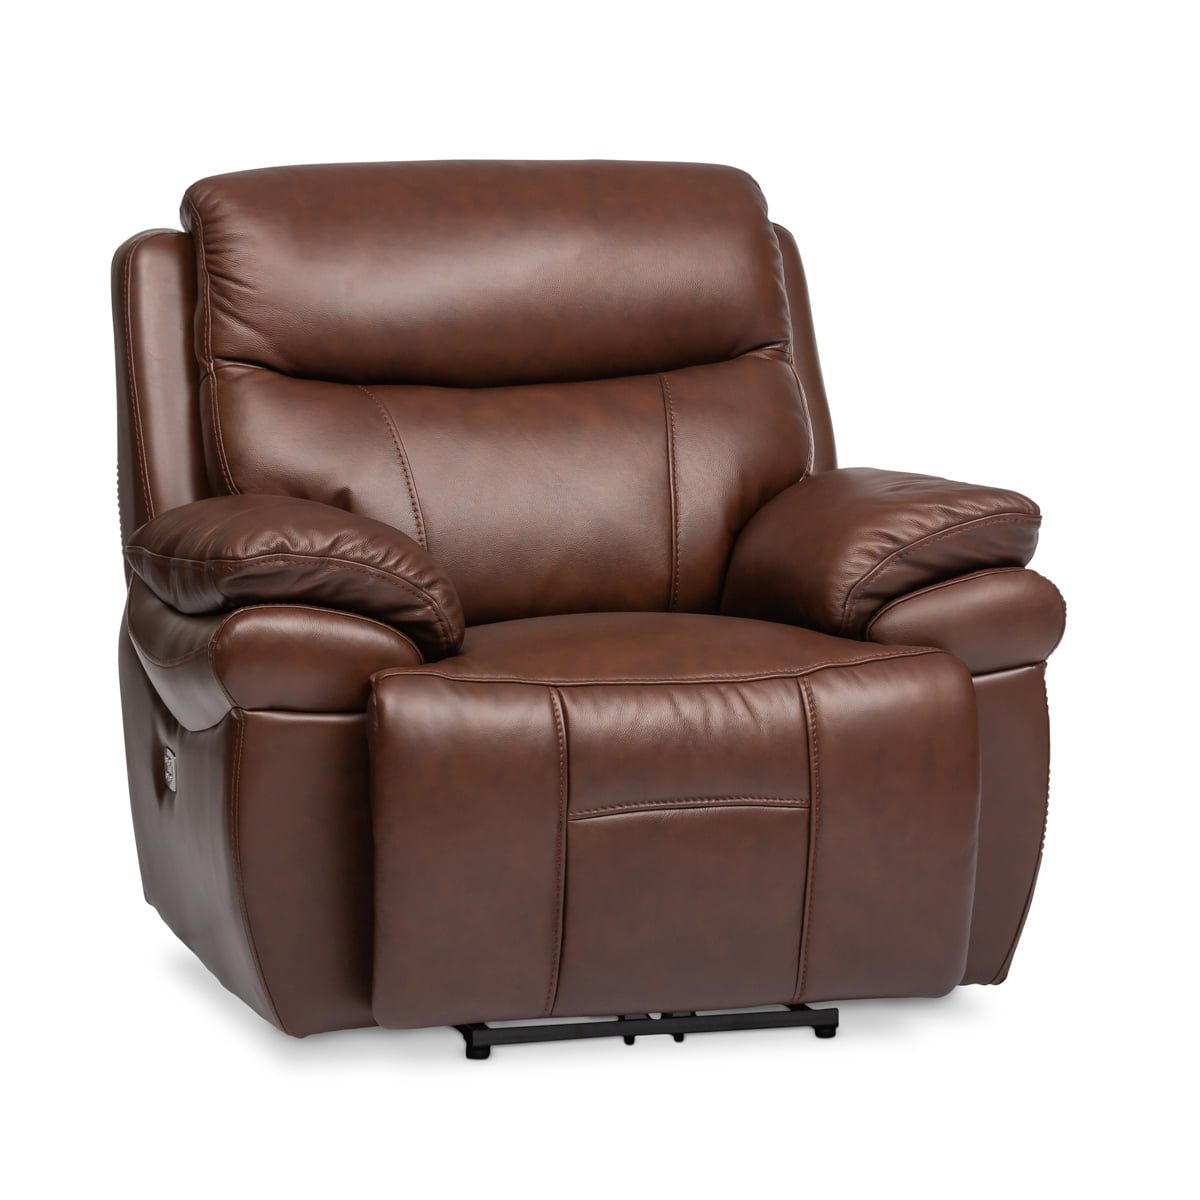 Chocolate Brown Recliner